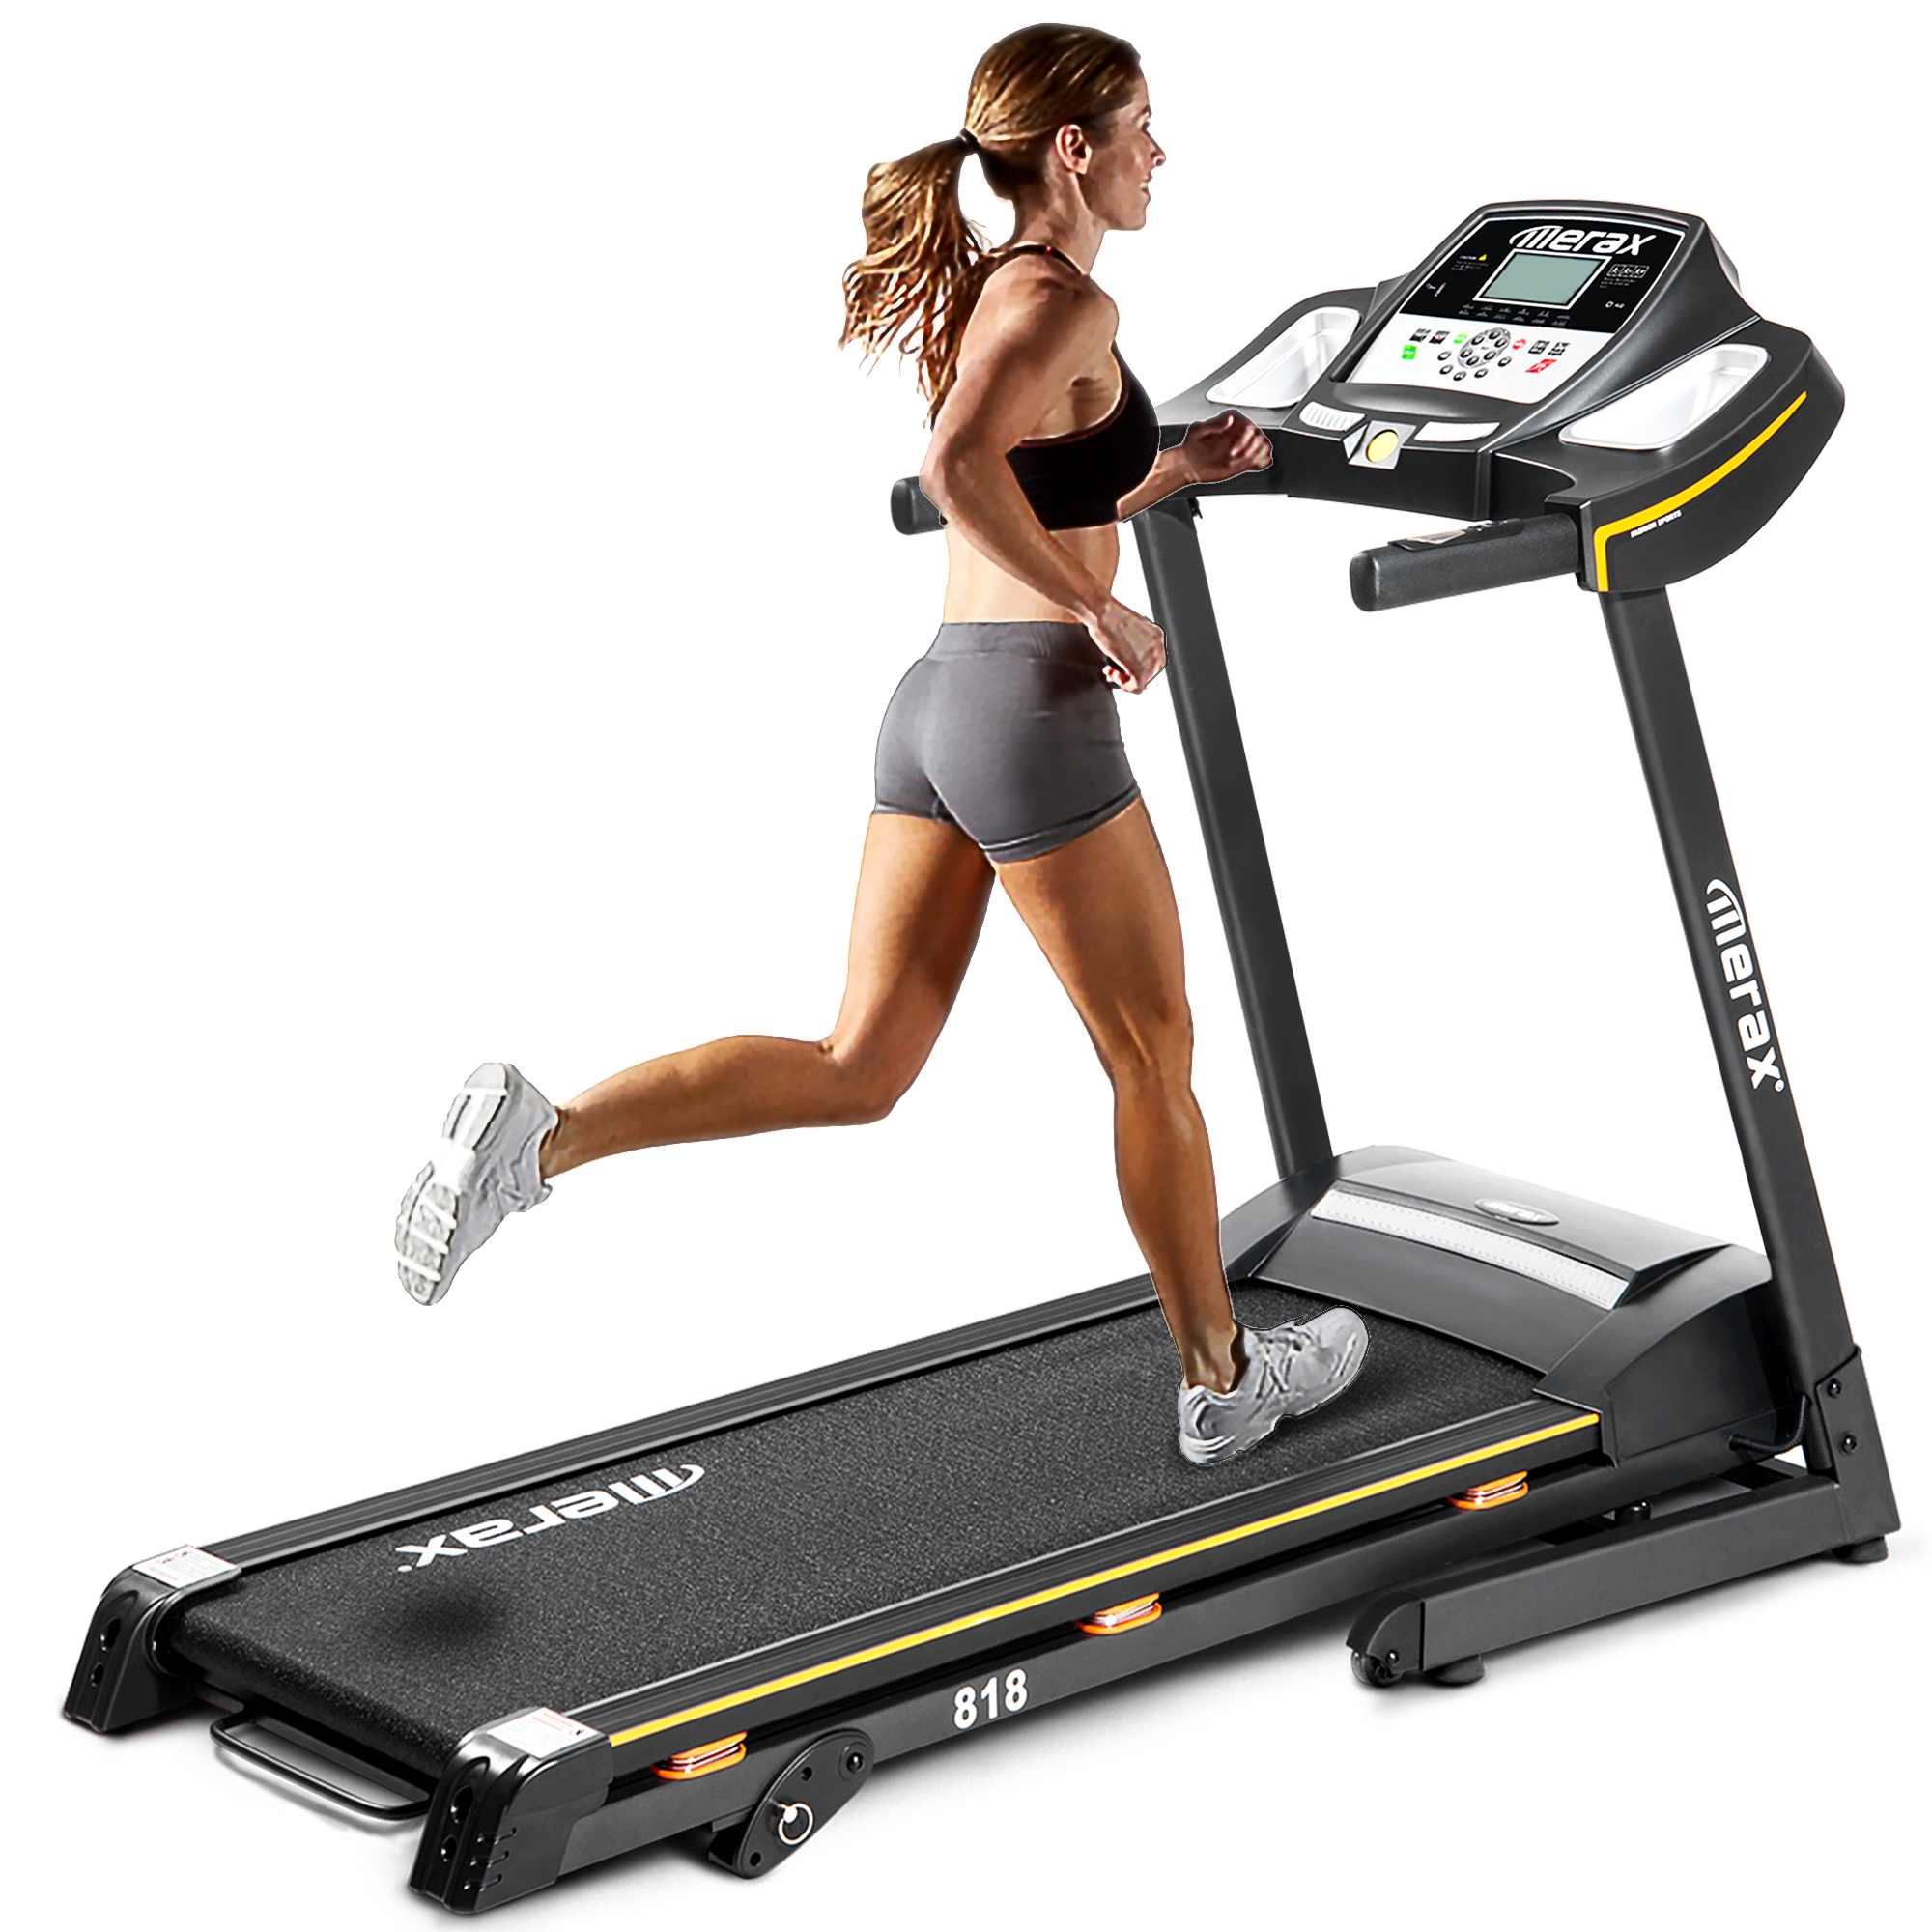 [US DIRECT] Merax Folding Electric Treadmill Motorized Running Machine with Manual Incline and Hydraulic Rod Mechanism